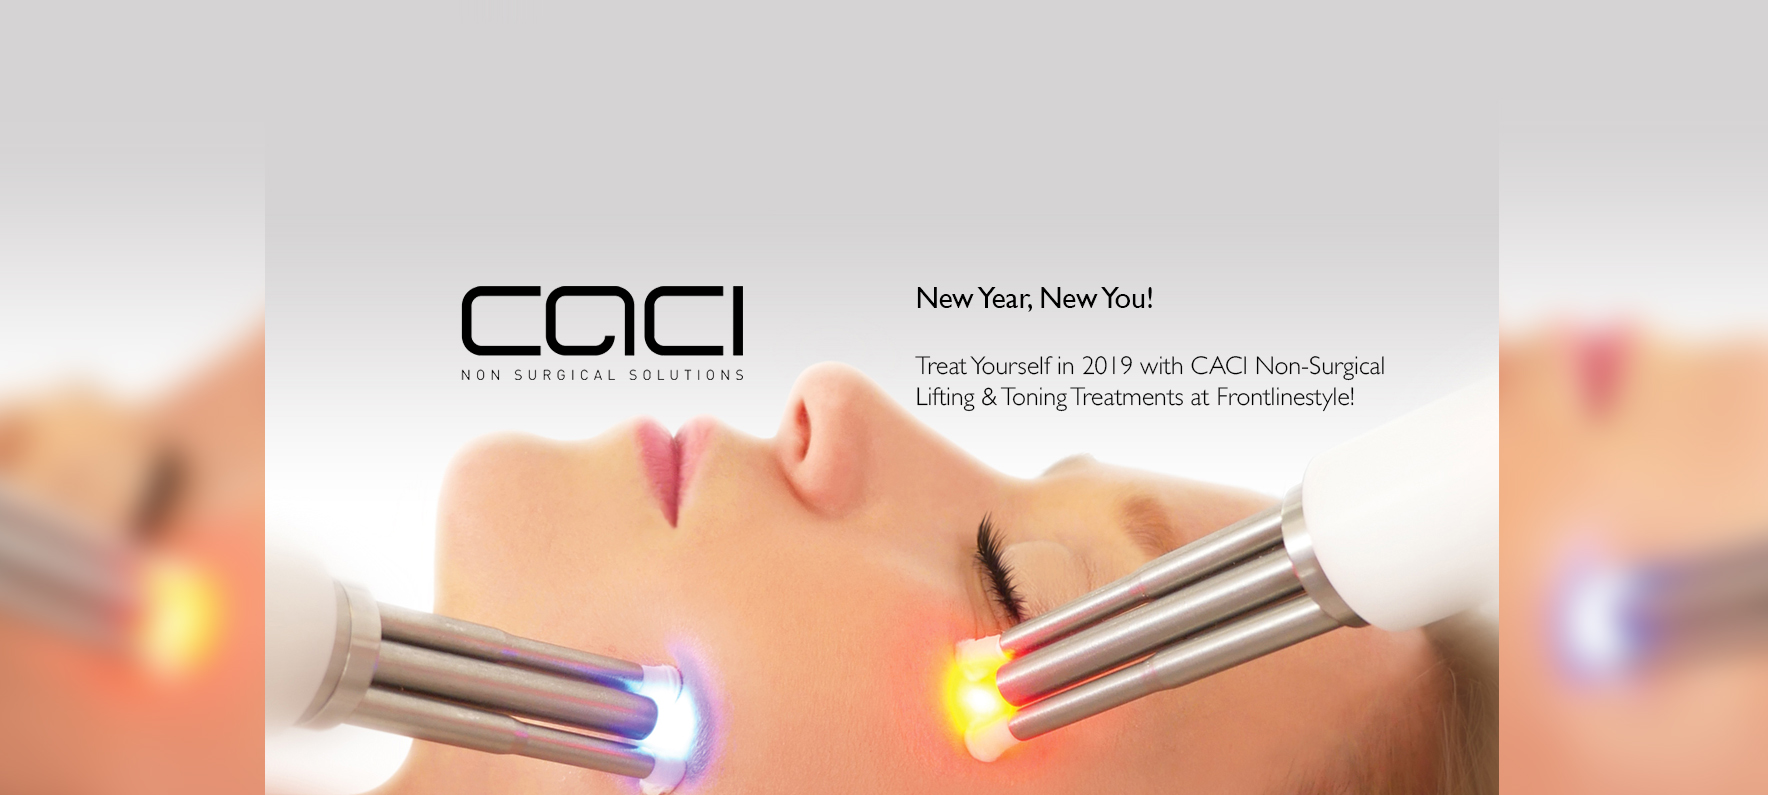 CACI - New Year New You